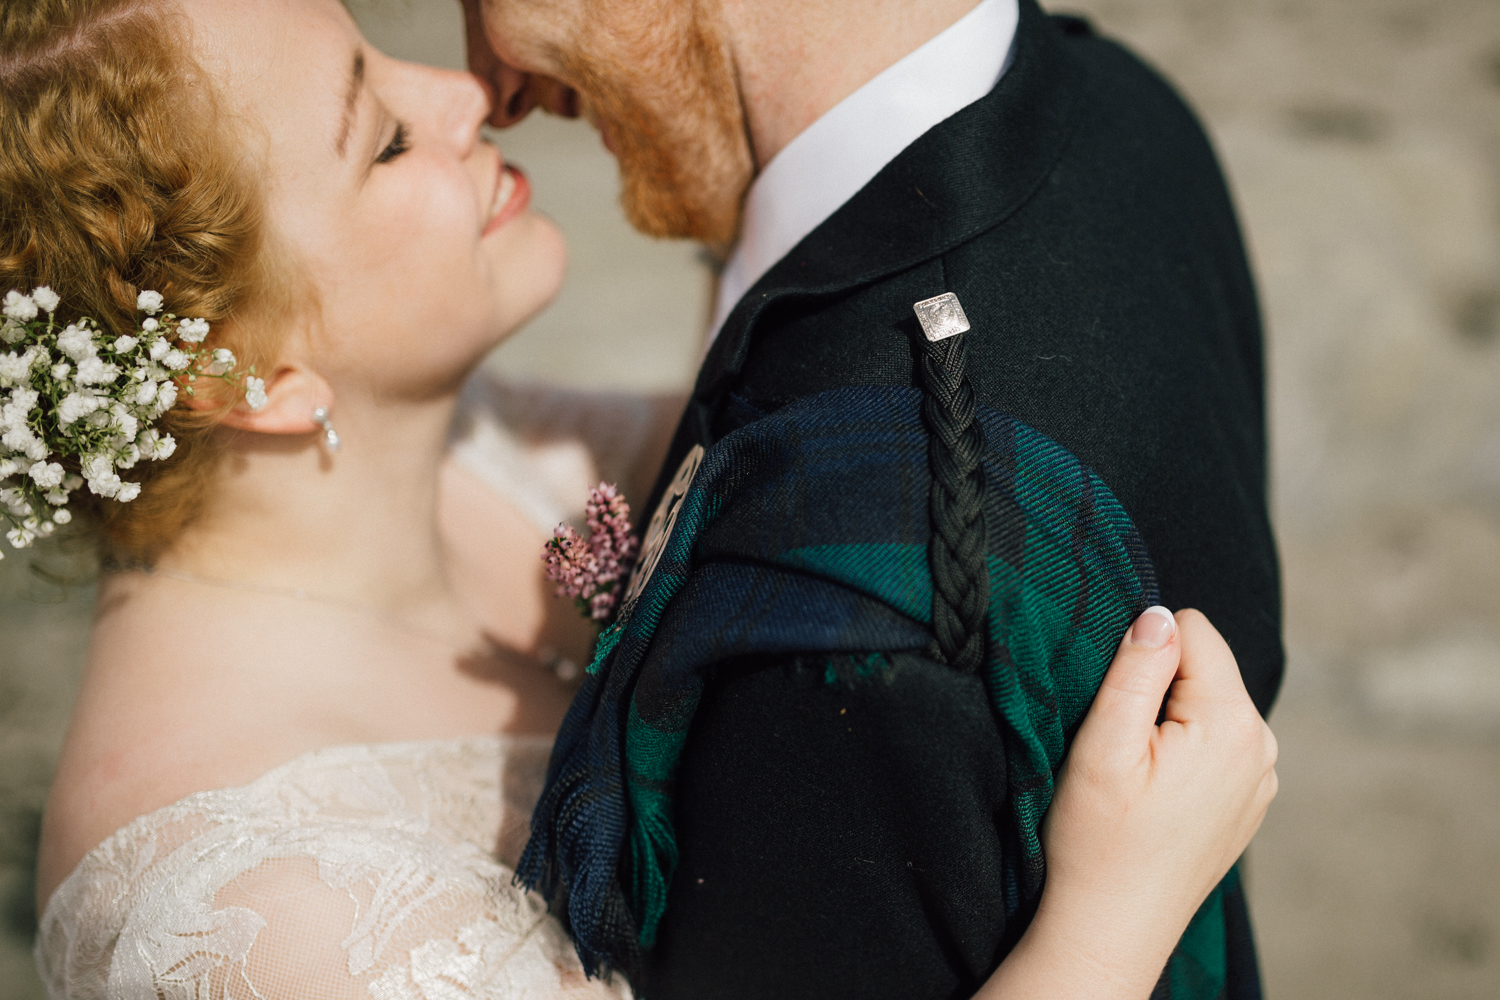 capyture-wedding-photographer-destination-crear-scotland-649